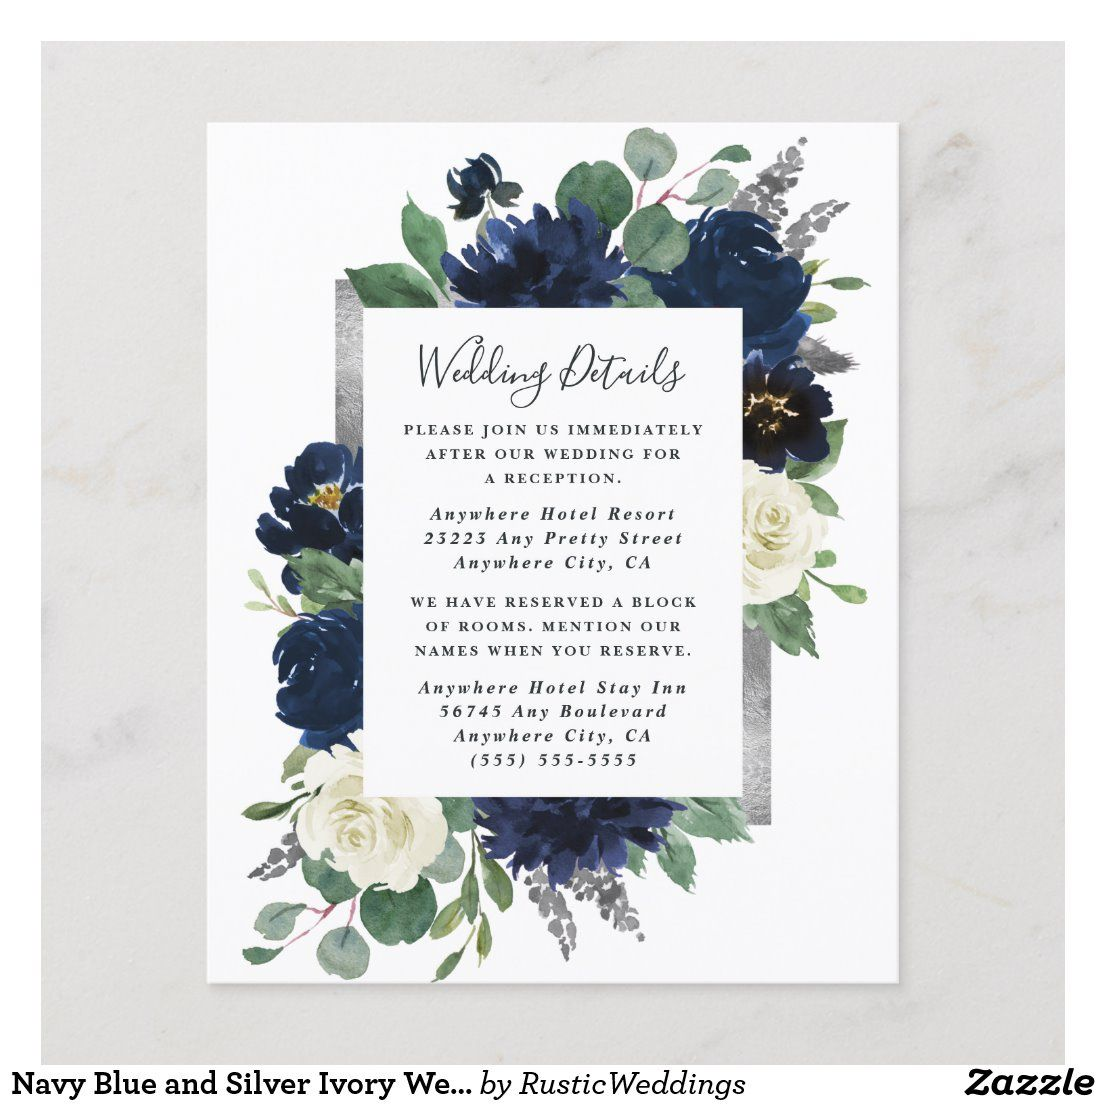 Navy Blue and Silver Ivory Wedding Enclosure Card in 2020